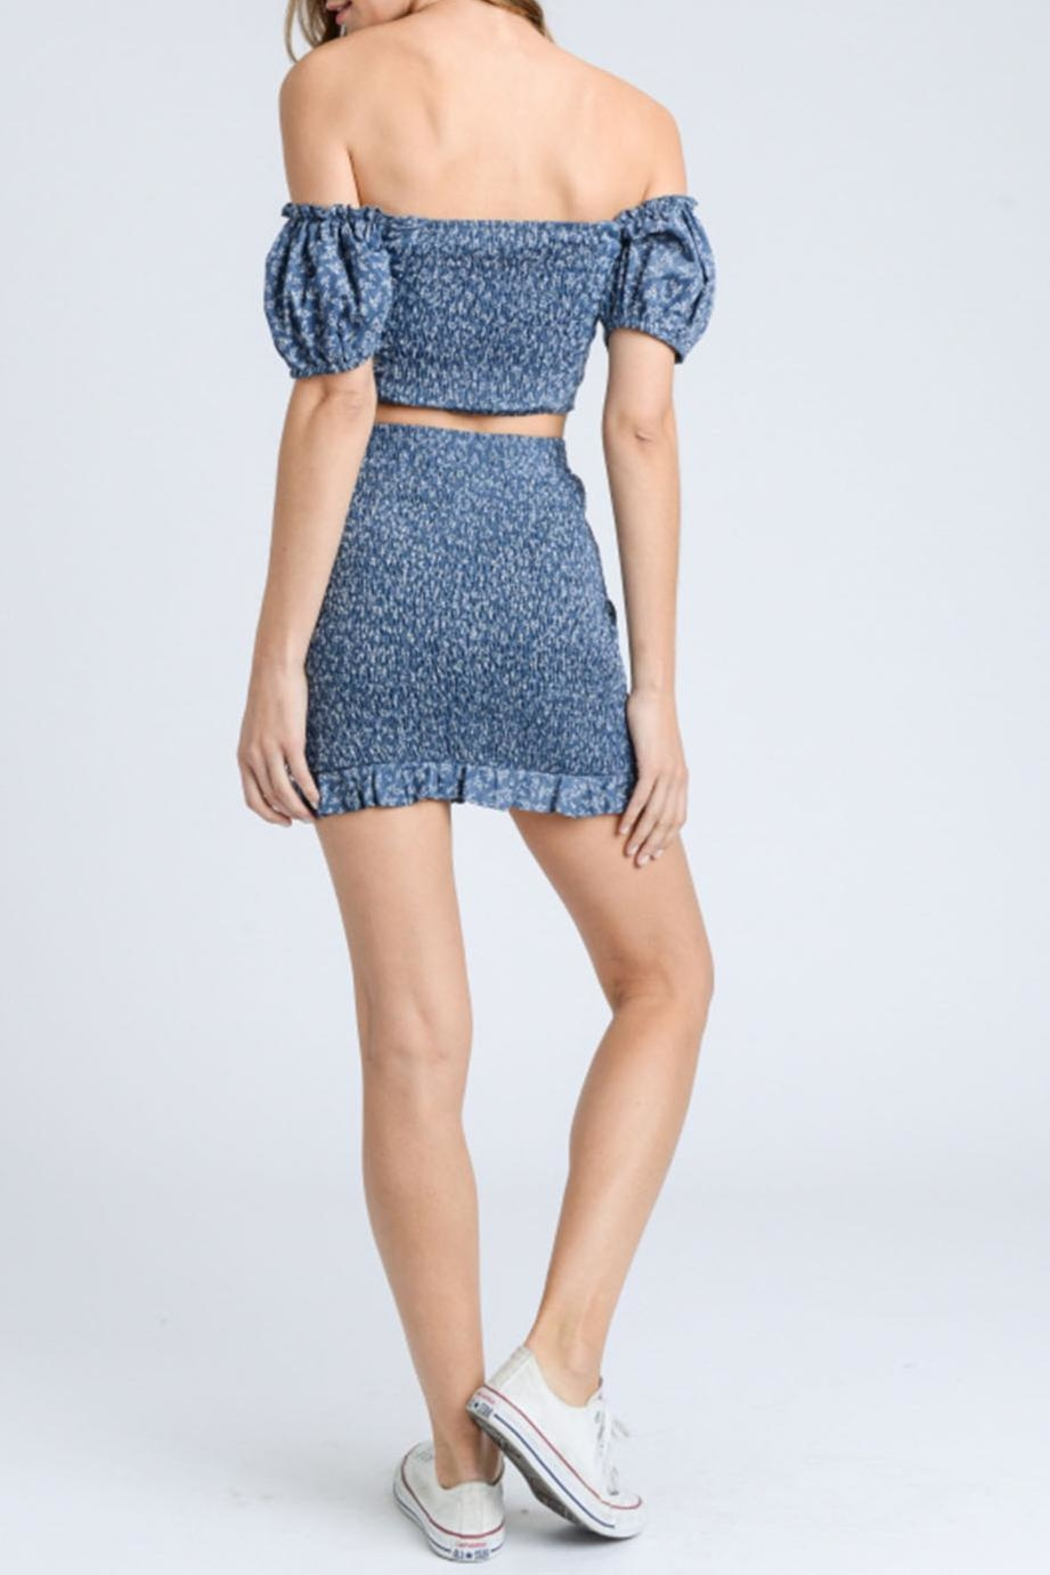 storia Blue Smocked Skirt - Back Cropped Image